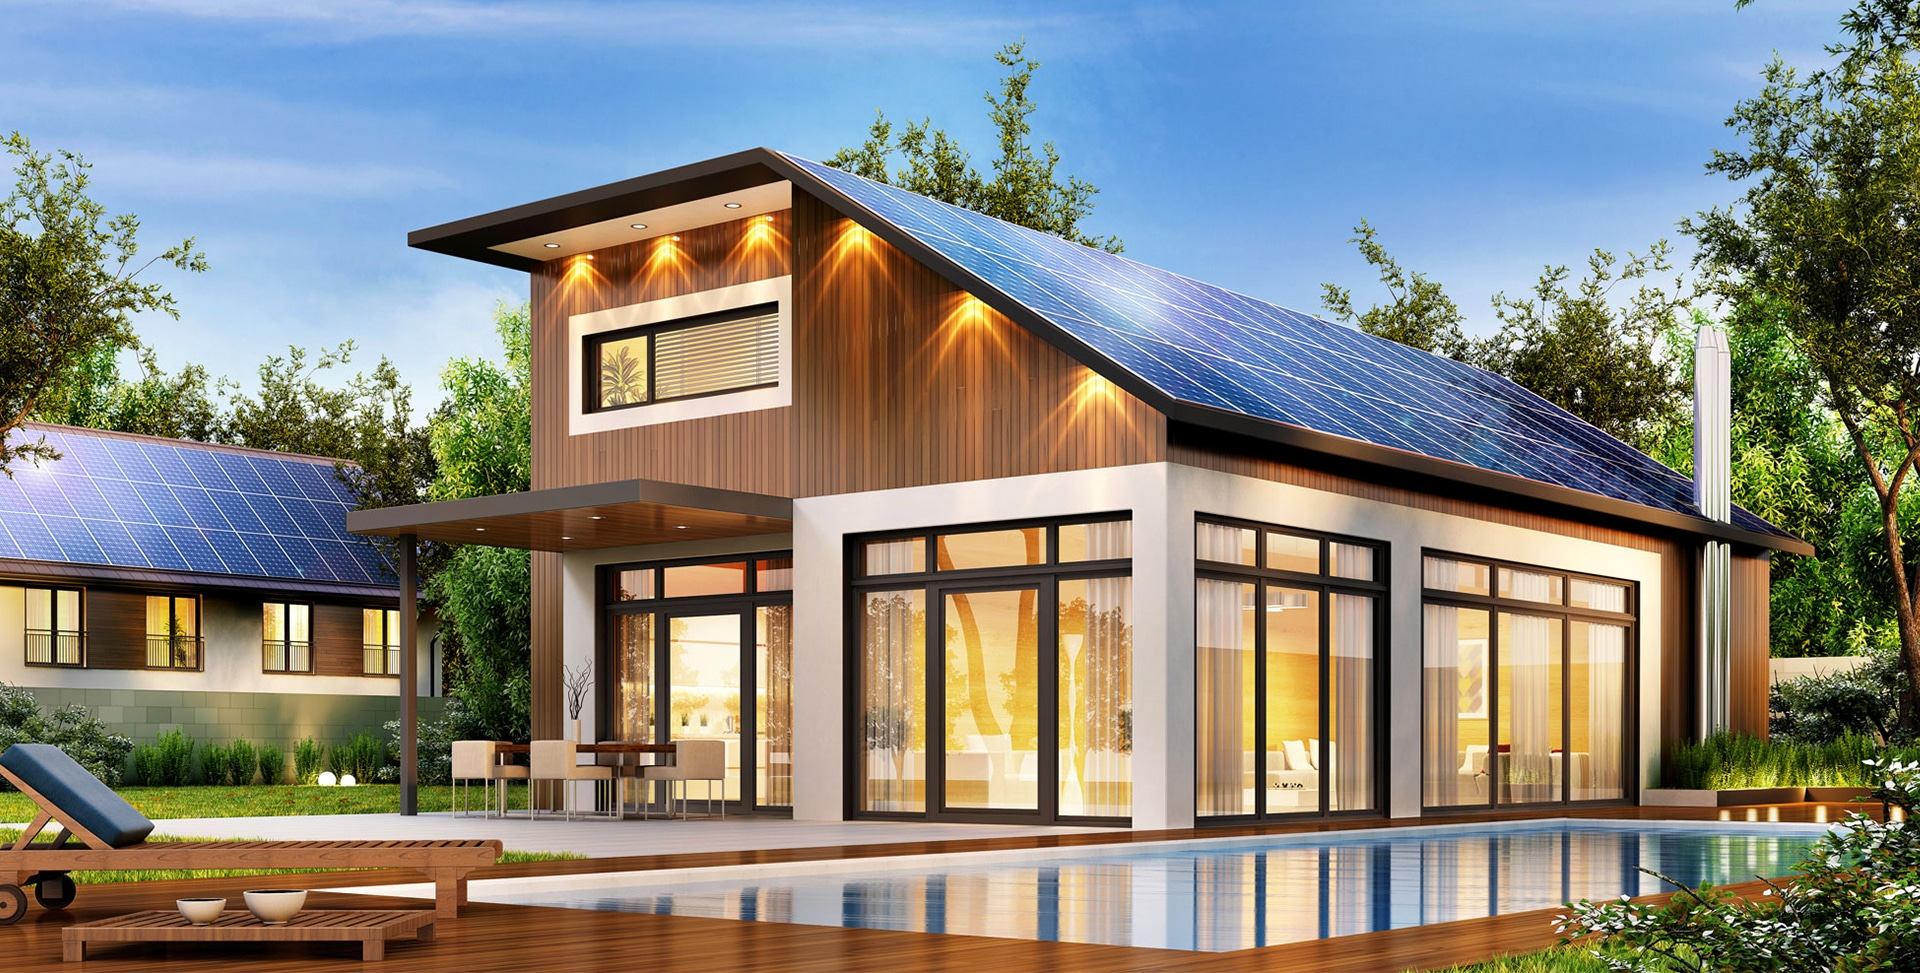 Buy Solar Panel For Home In Los Angeles